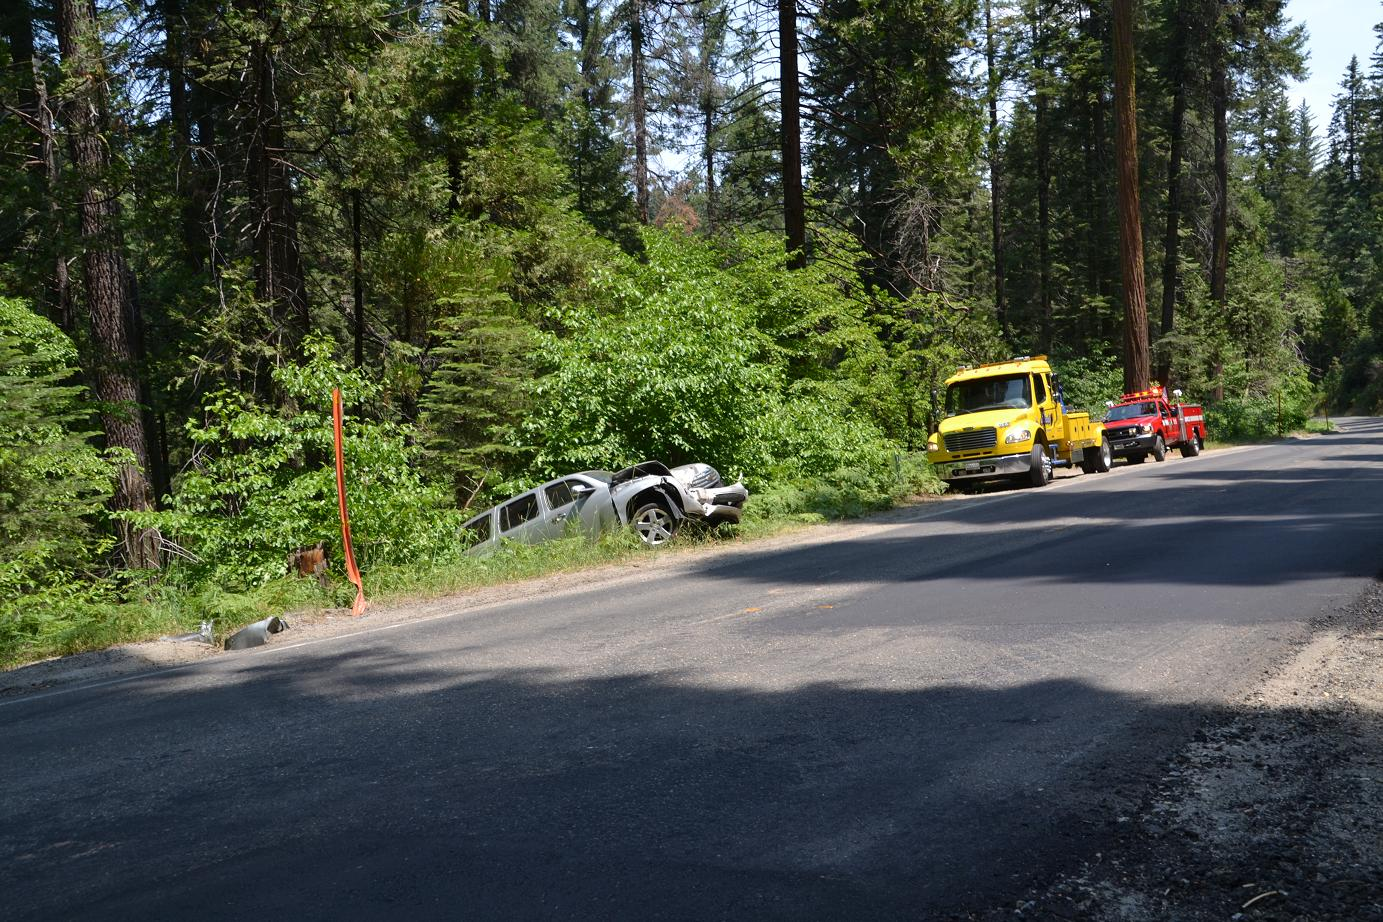 Chevy HHR off the road north of Sugar Pine